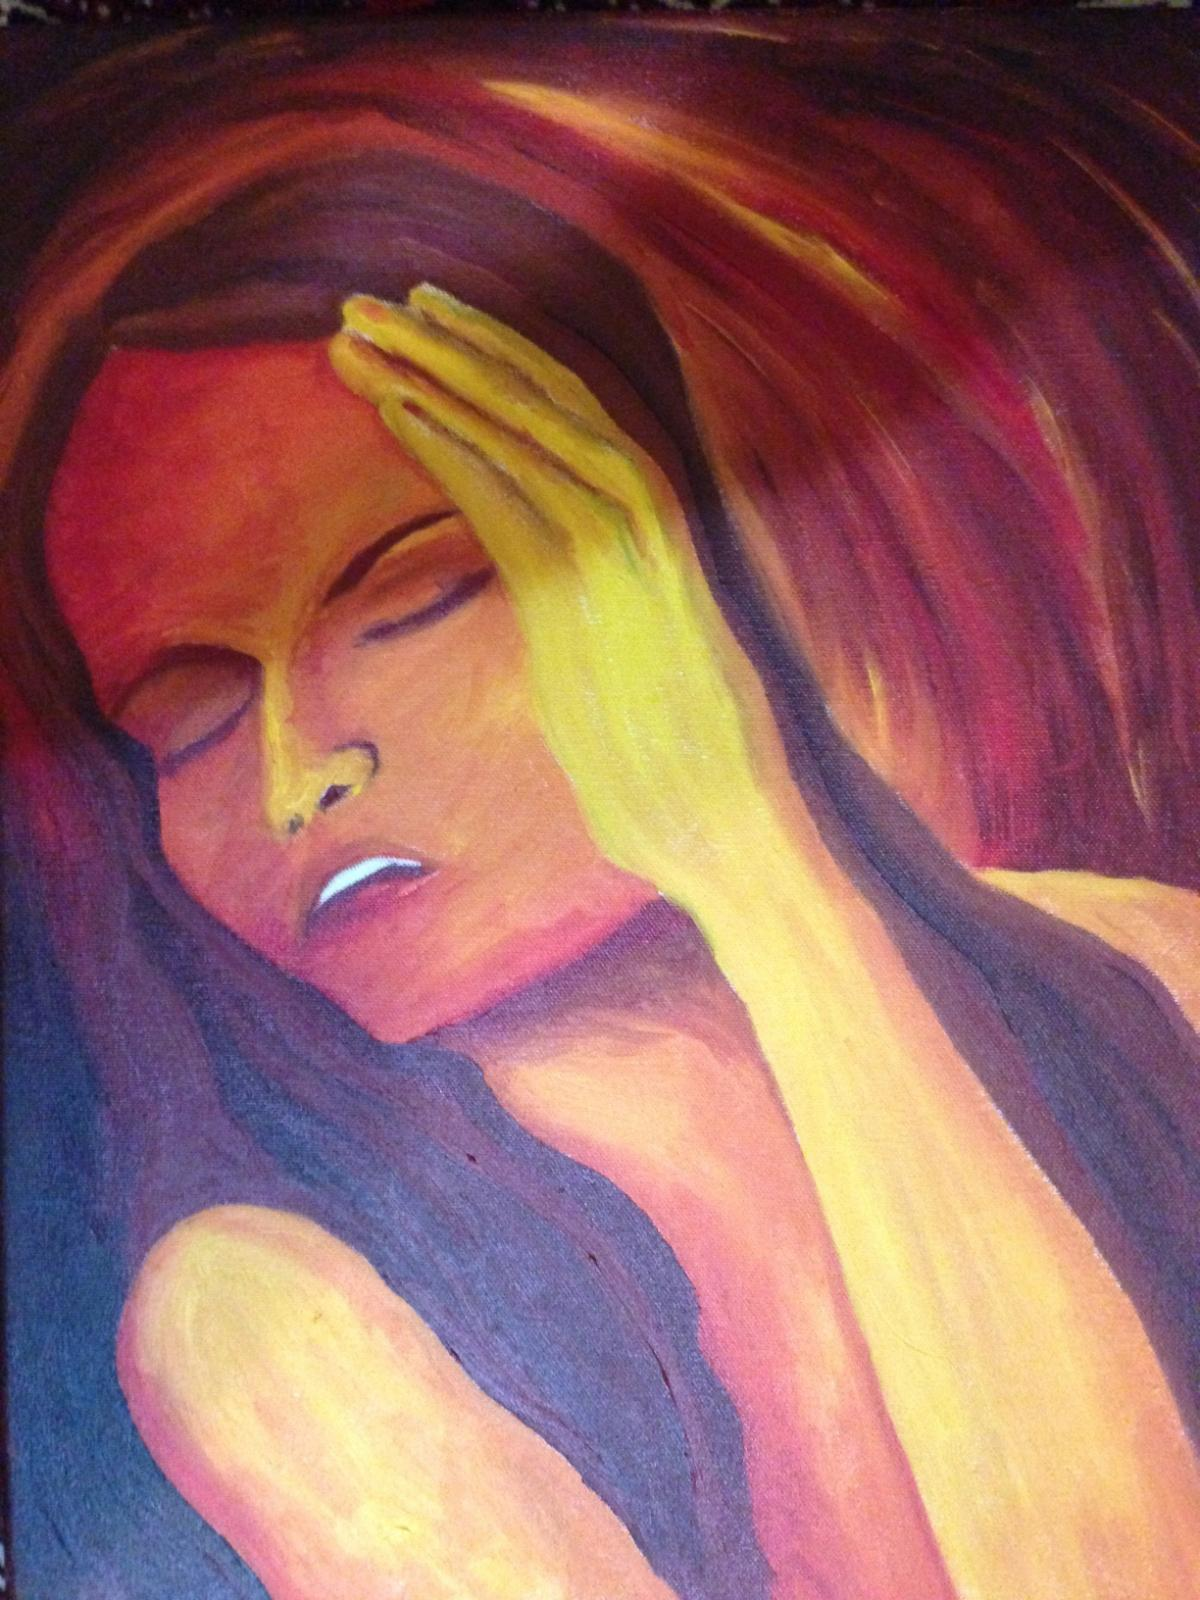 Bates experienced migraines as a child. She made this painting to depict how they felt to her.